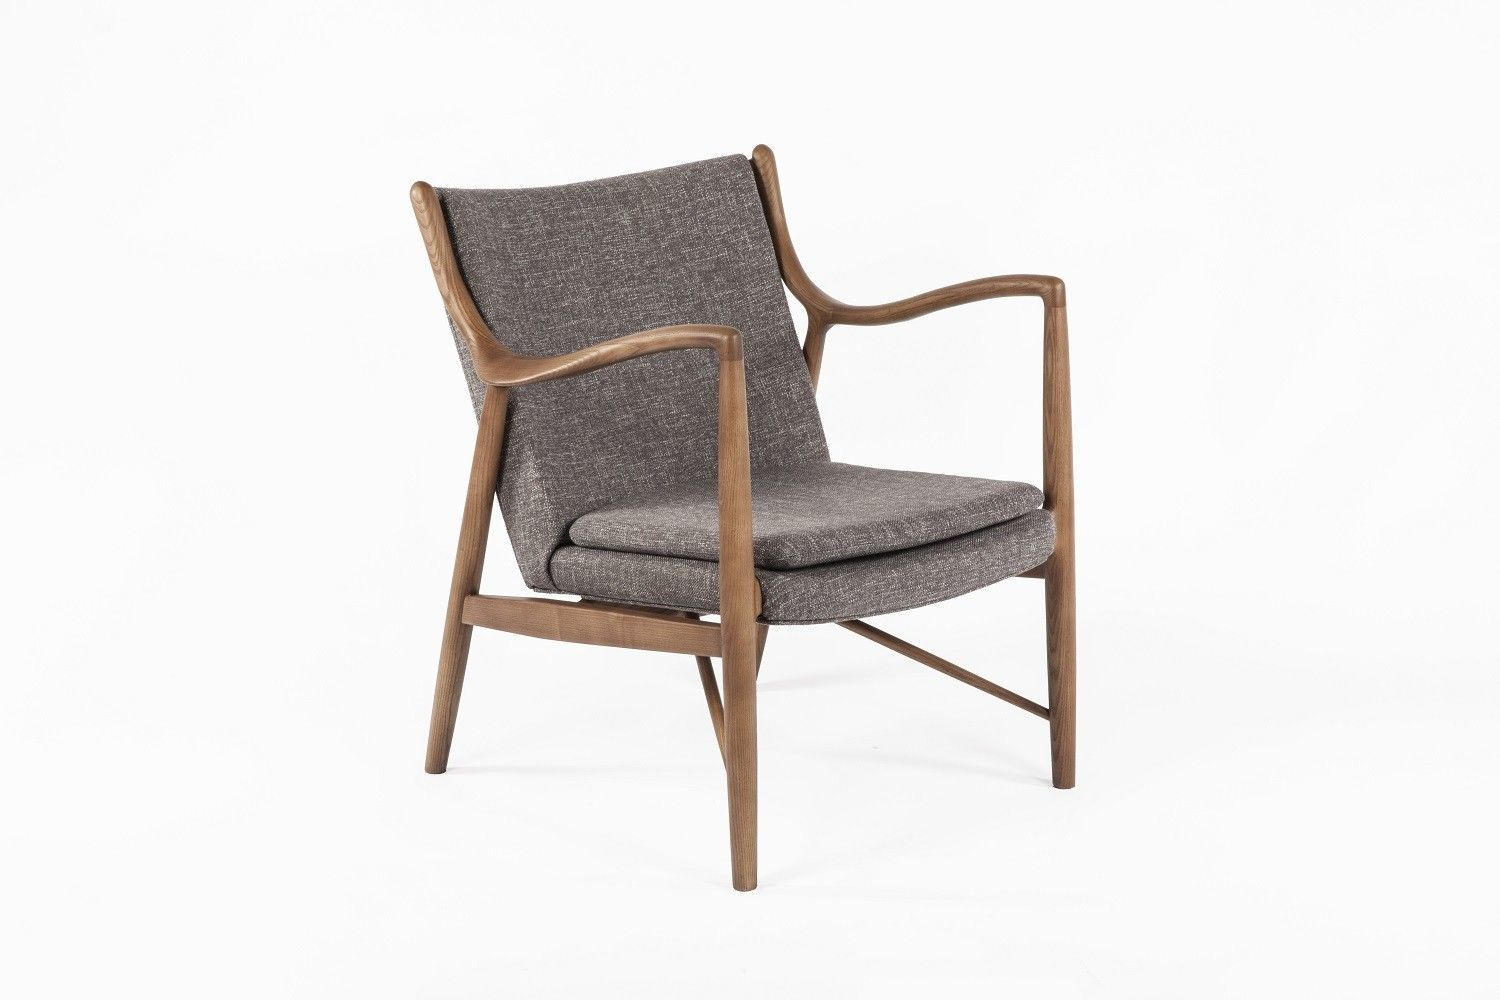 The Paltrow Arm Chair